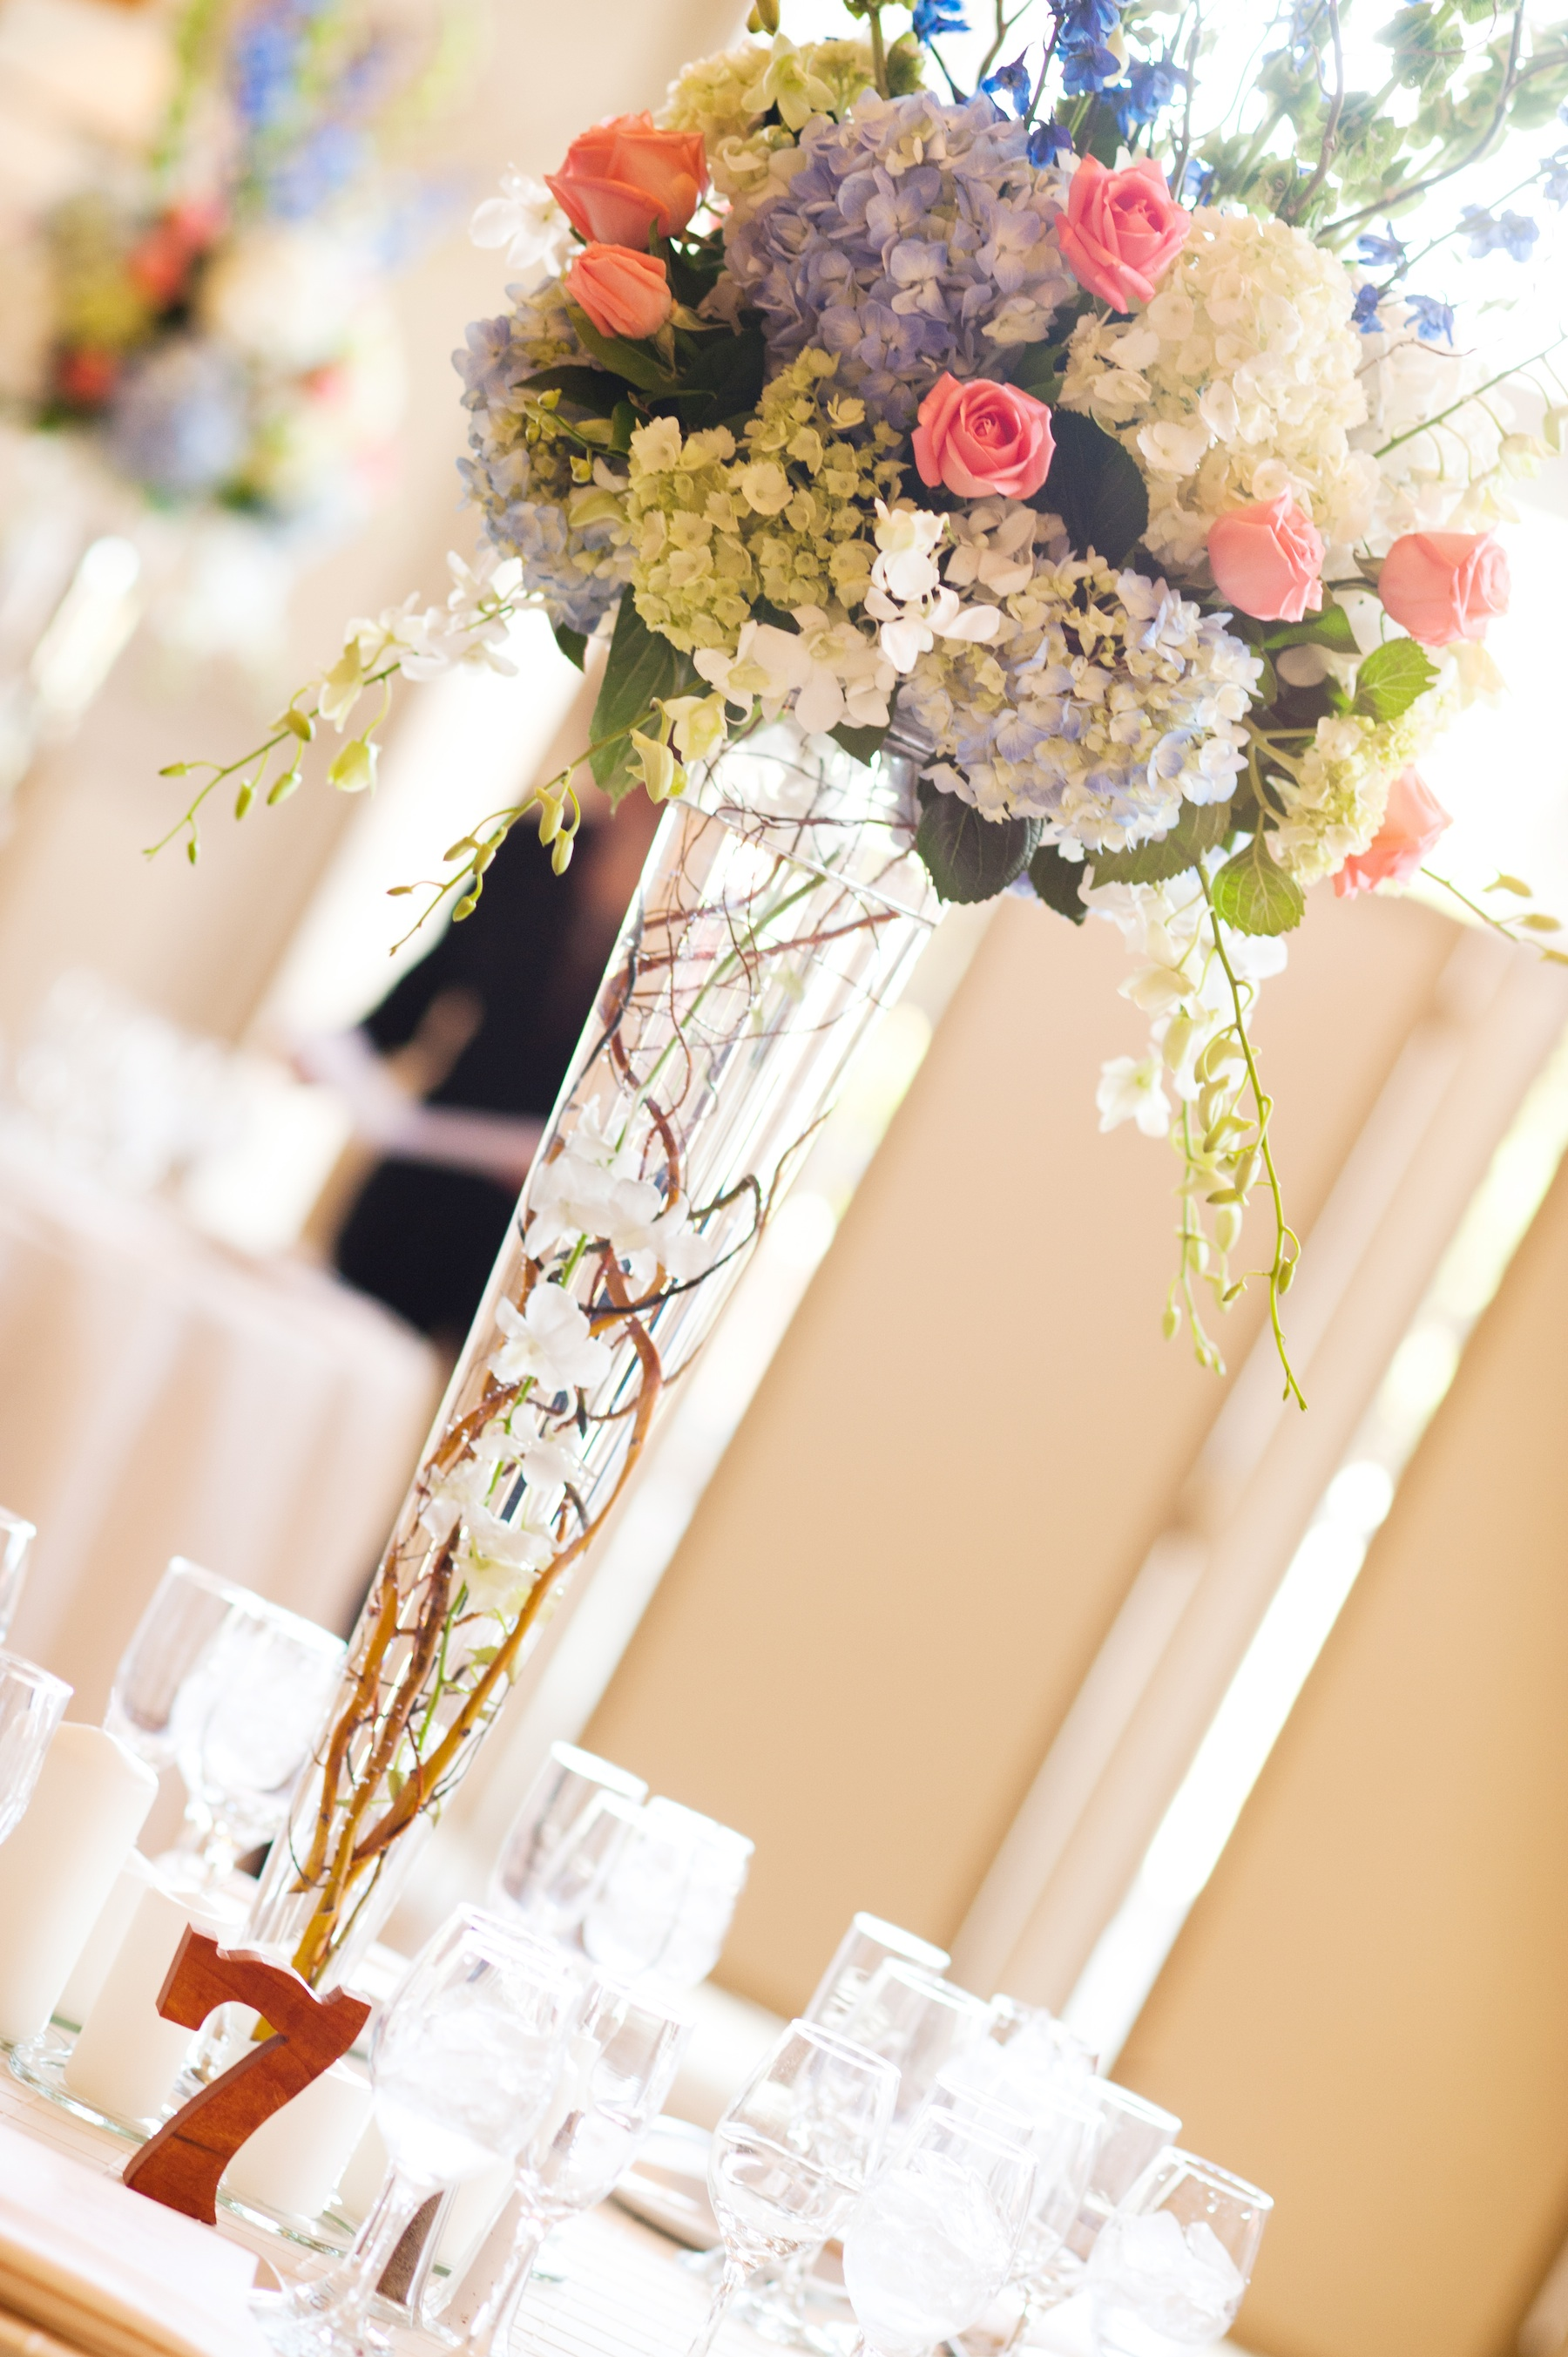 Memorable wedding sustainable centerpieces